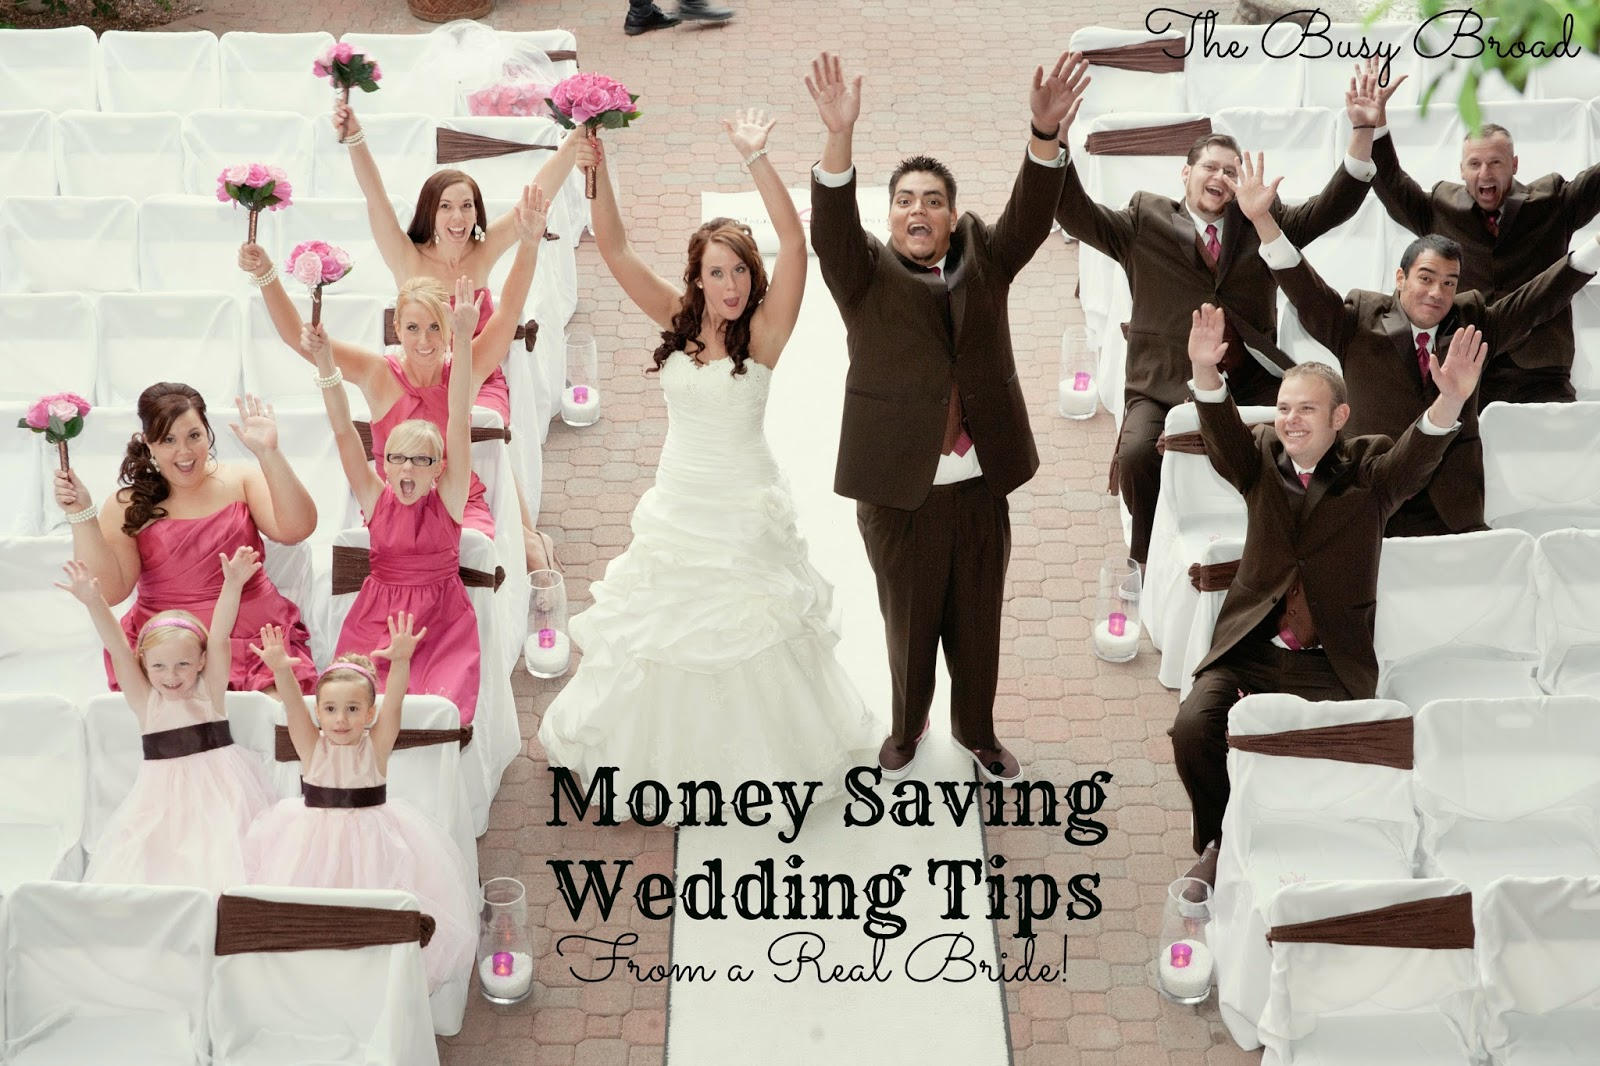 The Busy Broad Money Saving Wedding Tips From A Real Bride